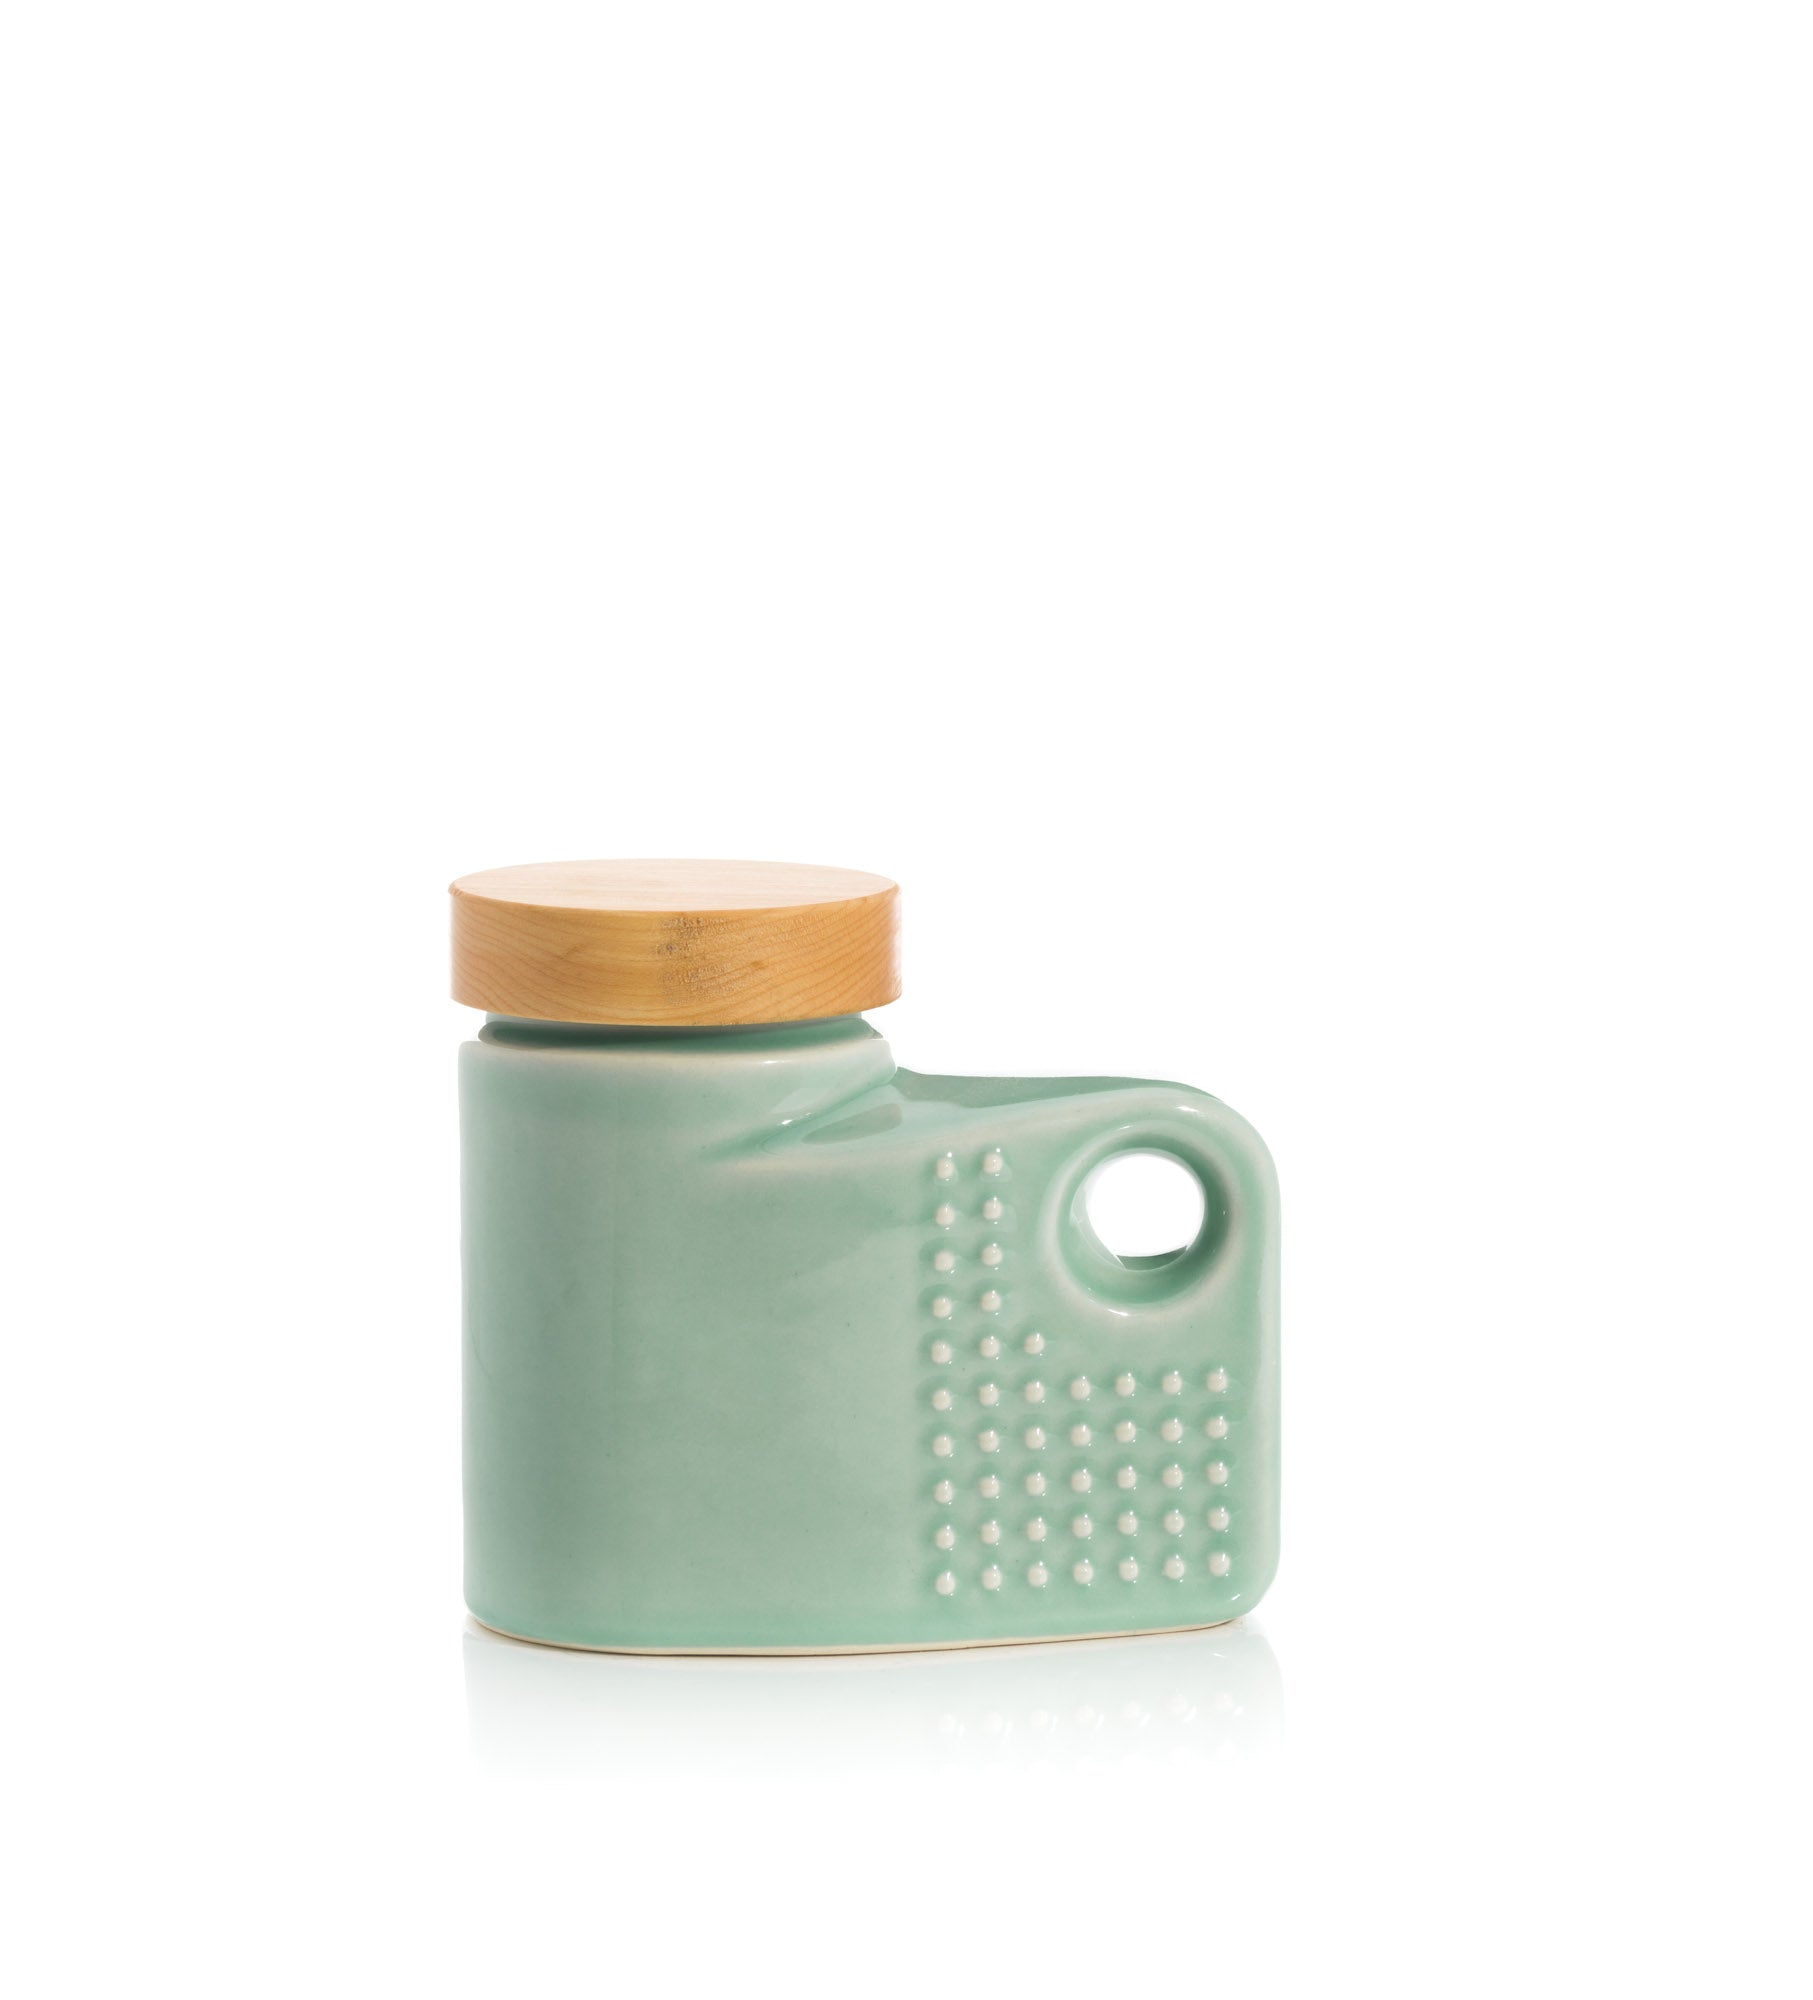 24oz Canister - Gloss Celadon